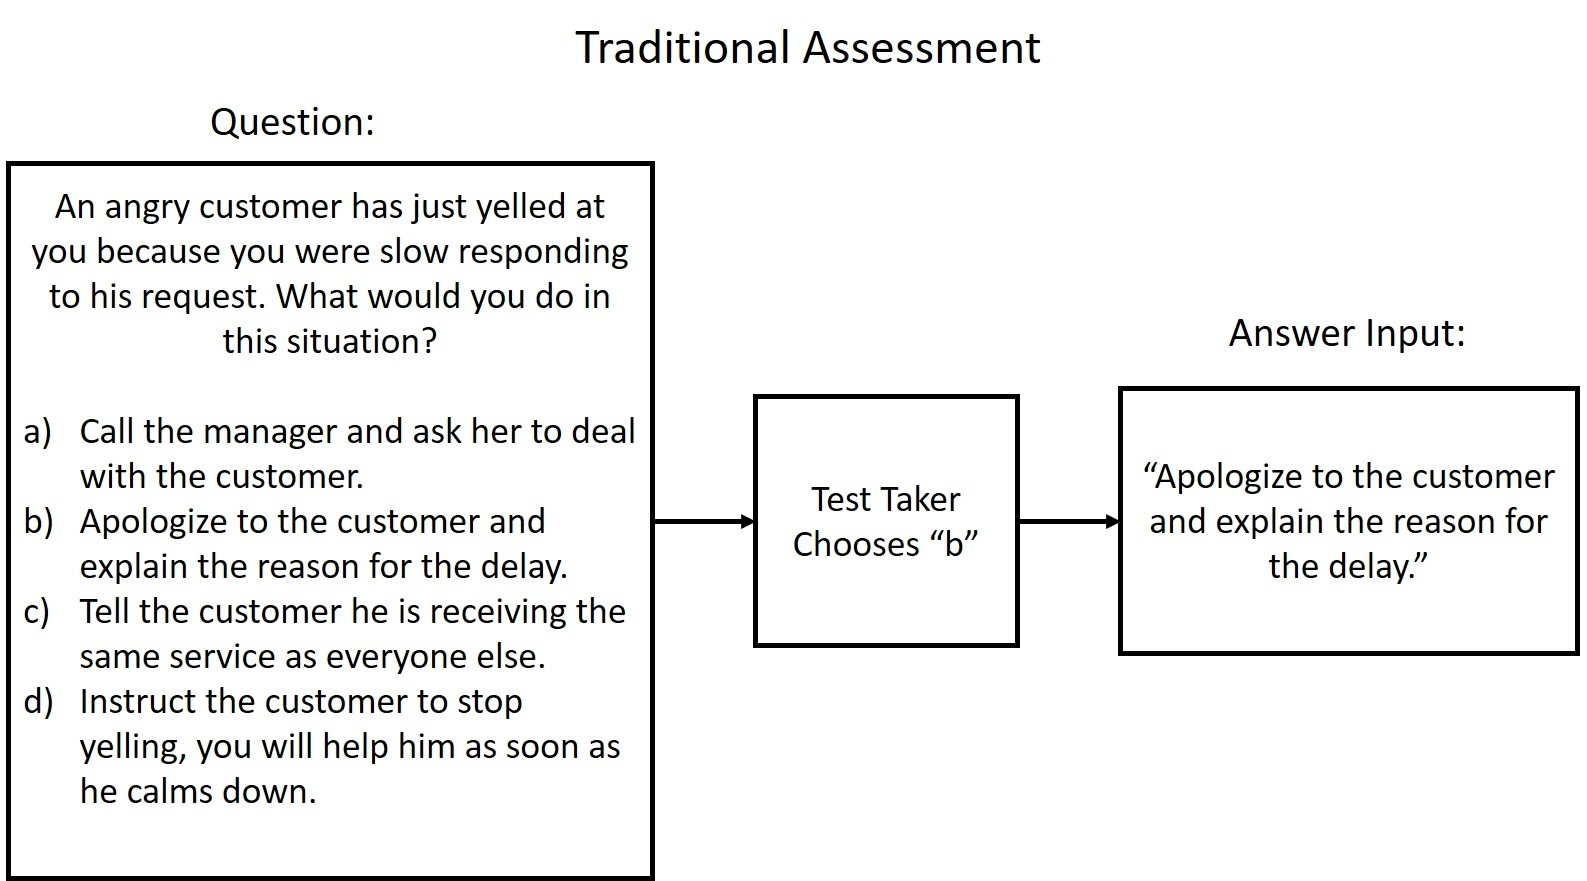 Traditional Assessment, structured data.jpg